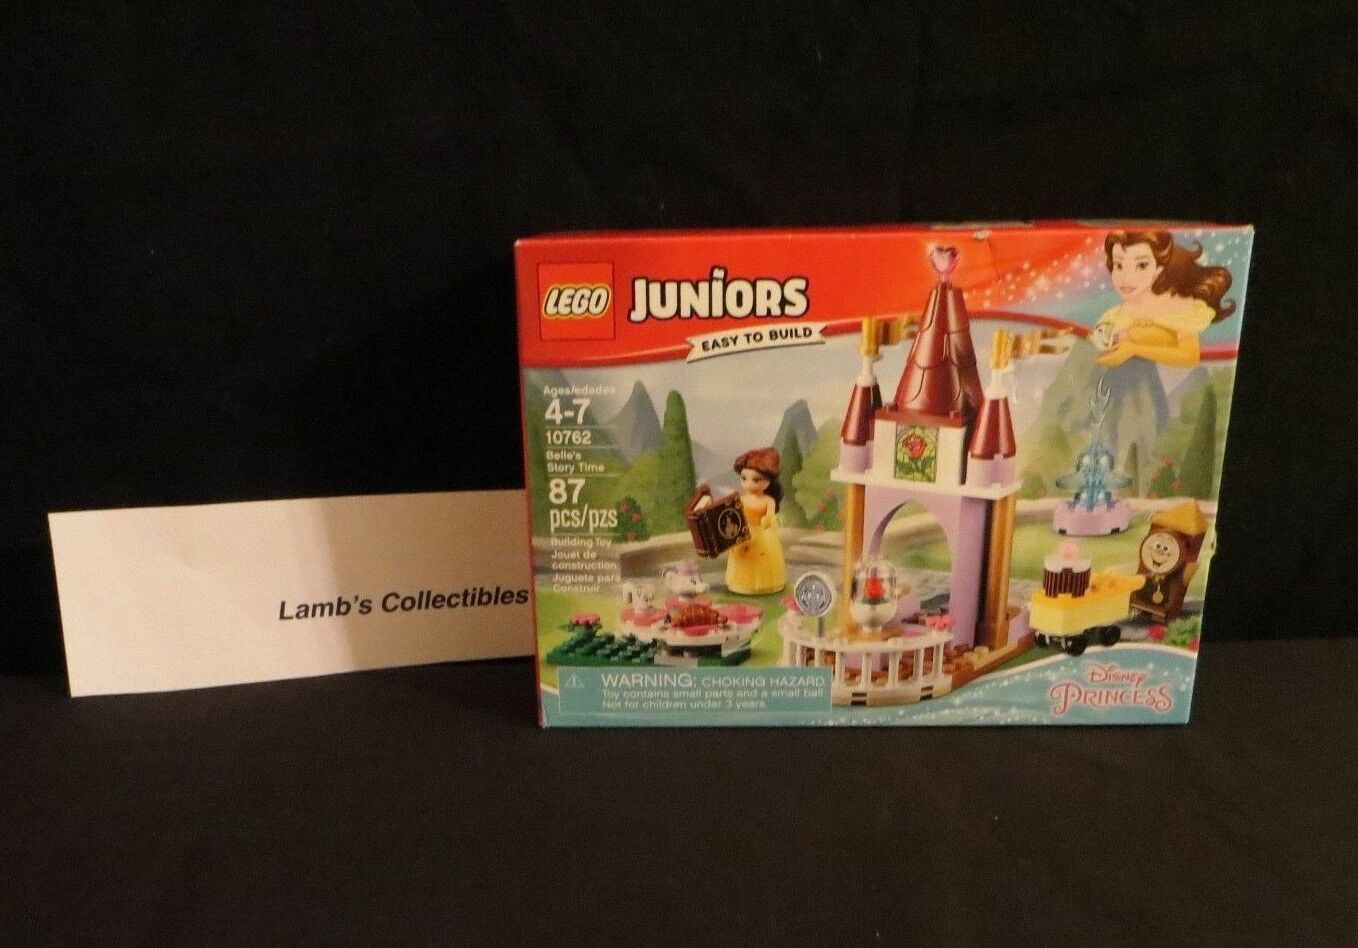 Primary image for Belle's Story time Lego Juniors Disney set 10762 - 87 pieces building bricks toy